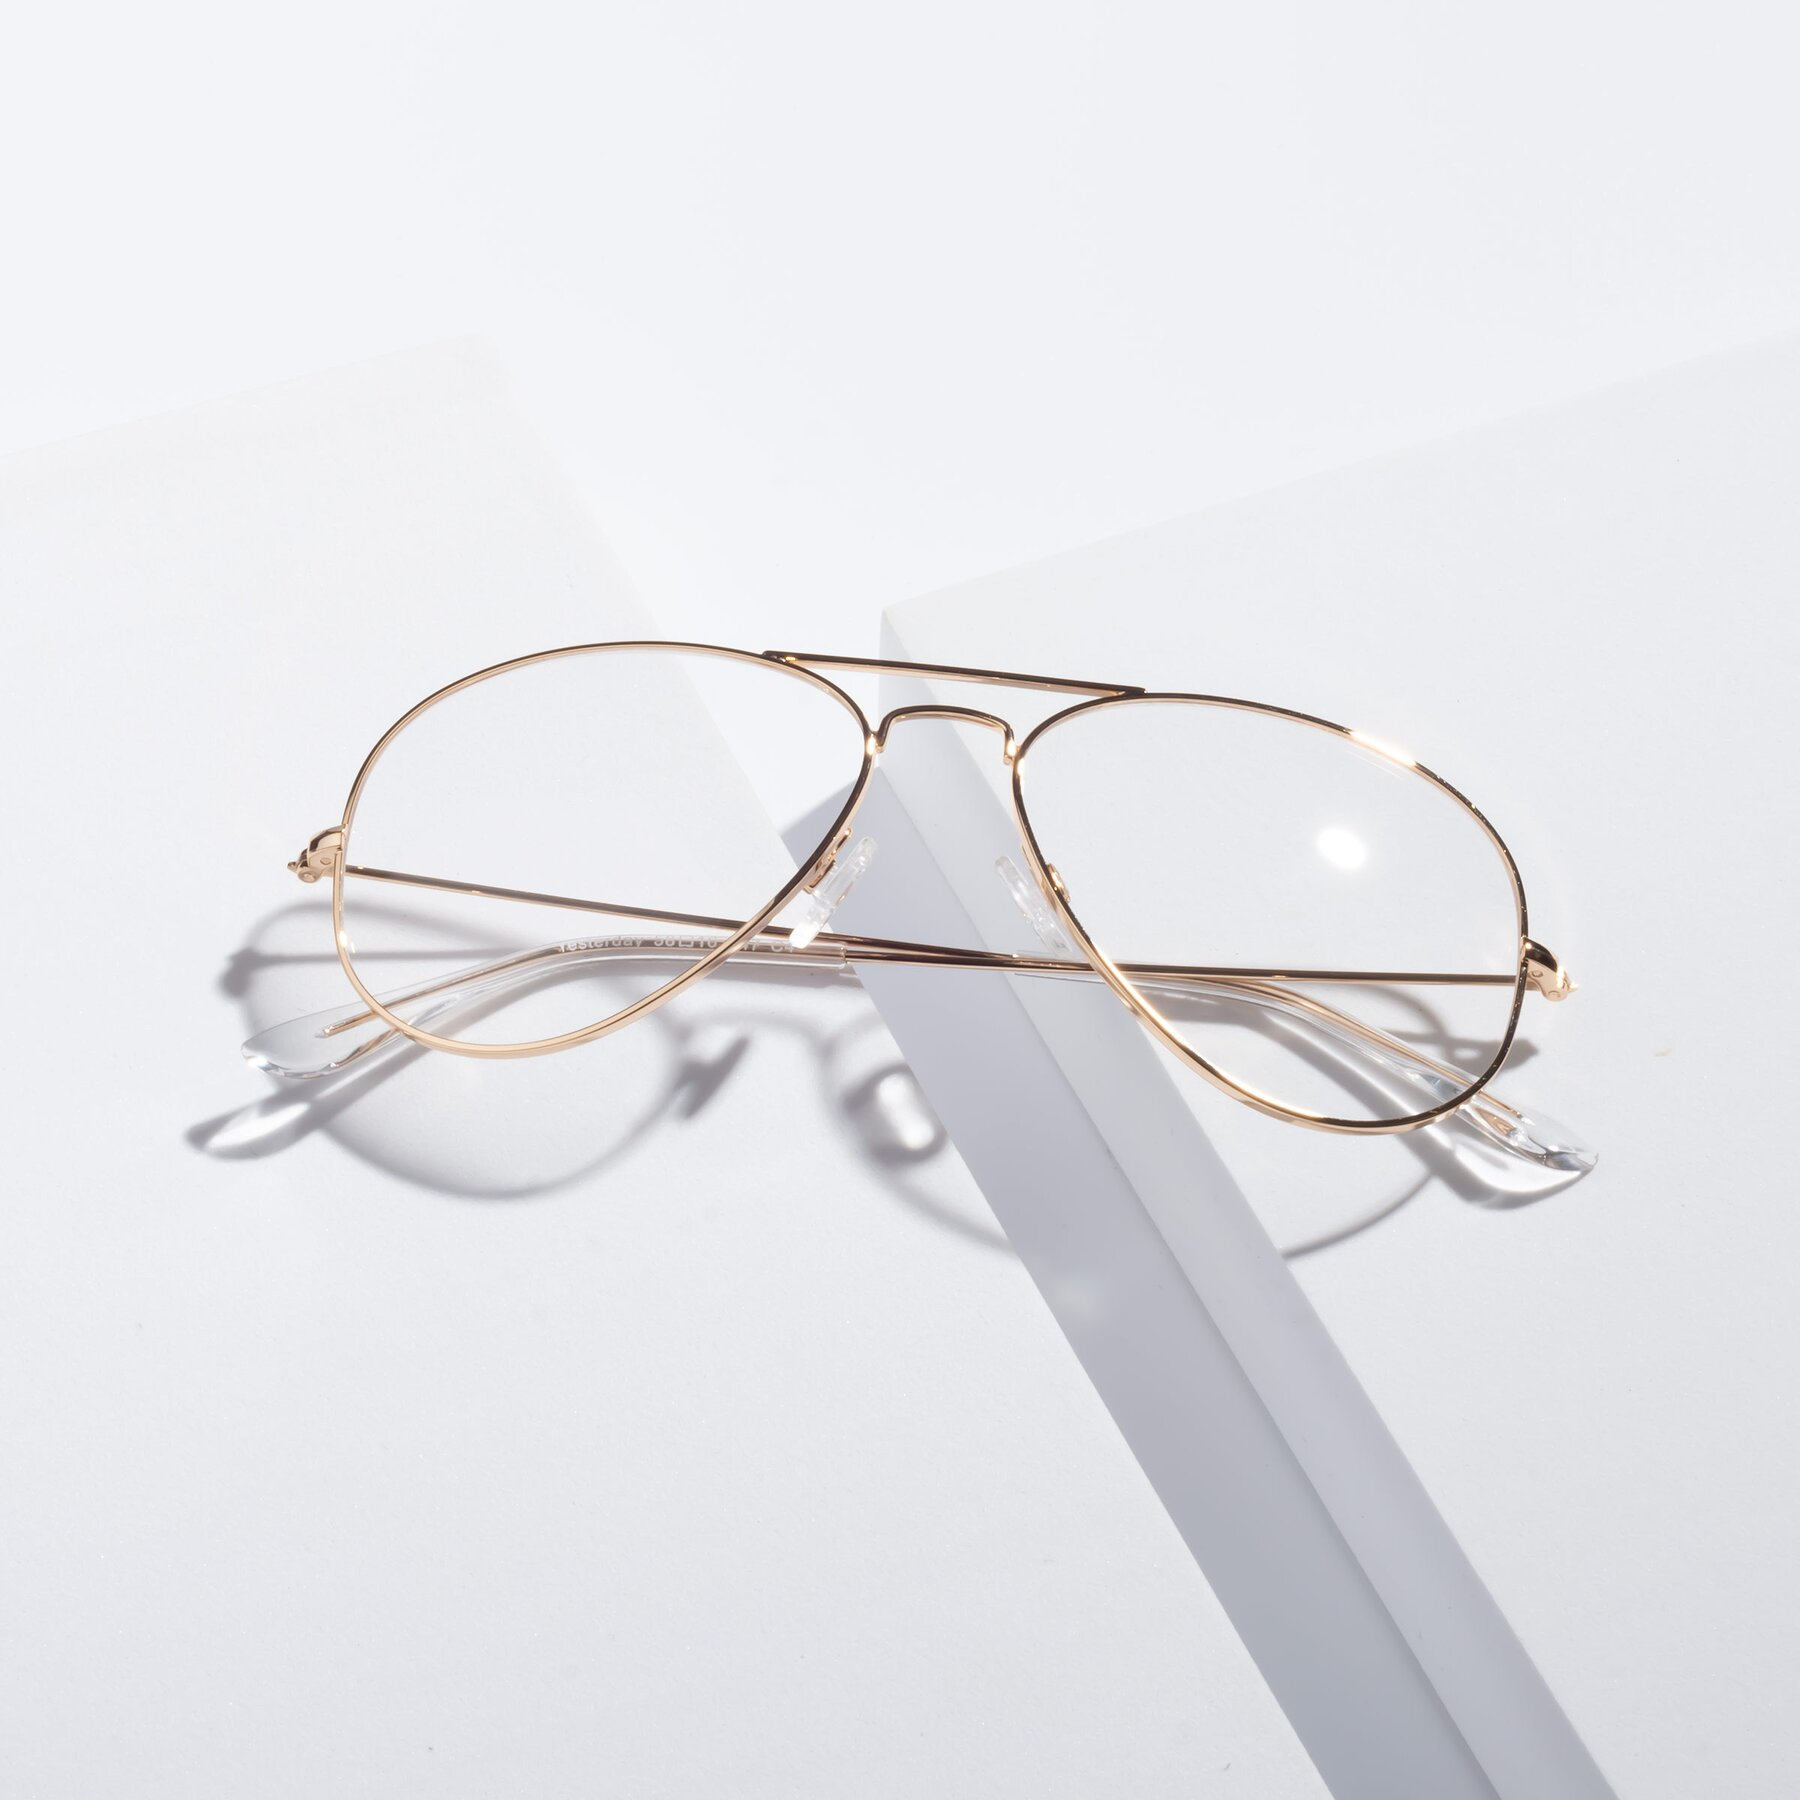 Lifestyle photography #1 of SSR035 in Shiny Gold with Clear Eyeglass Lenses